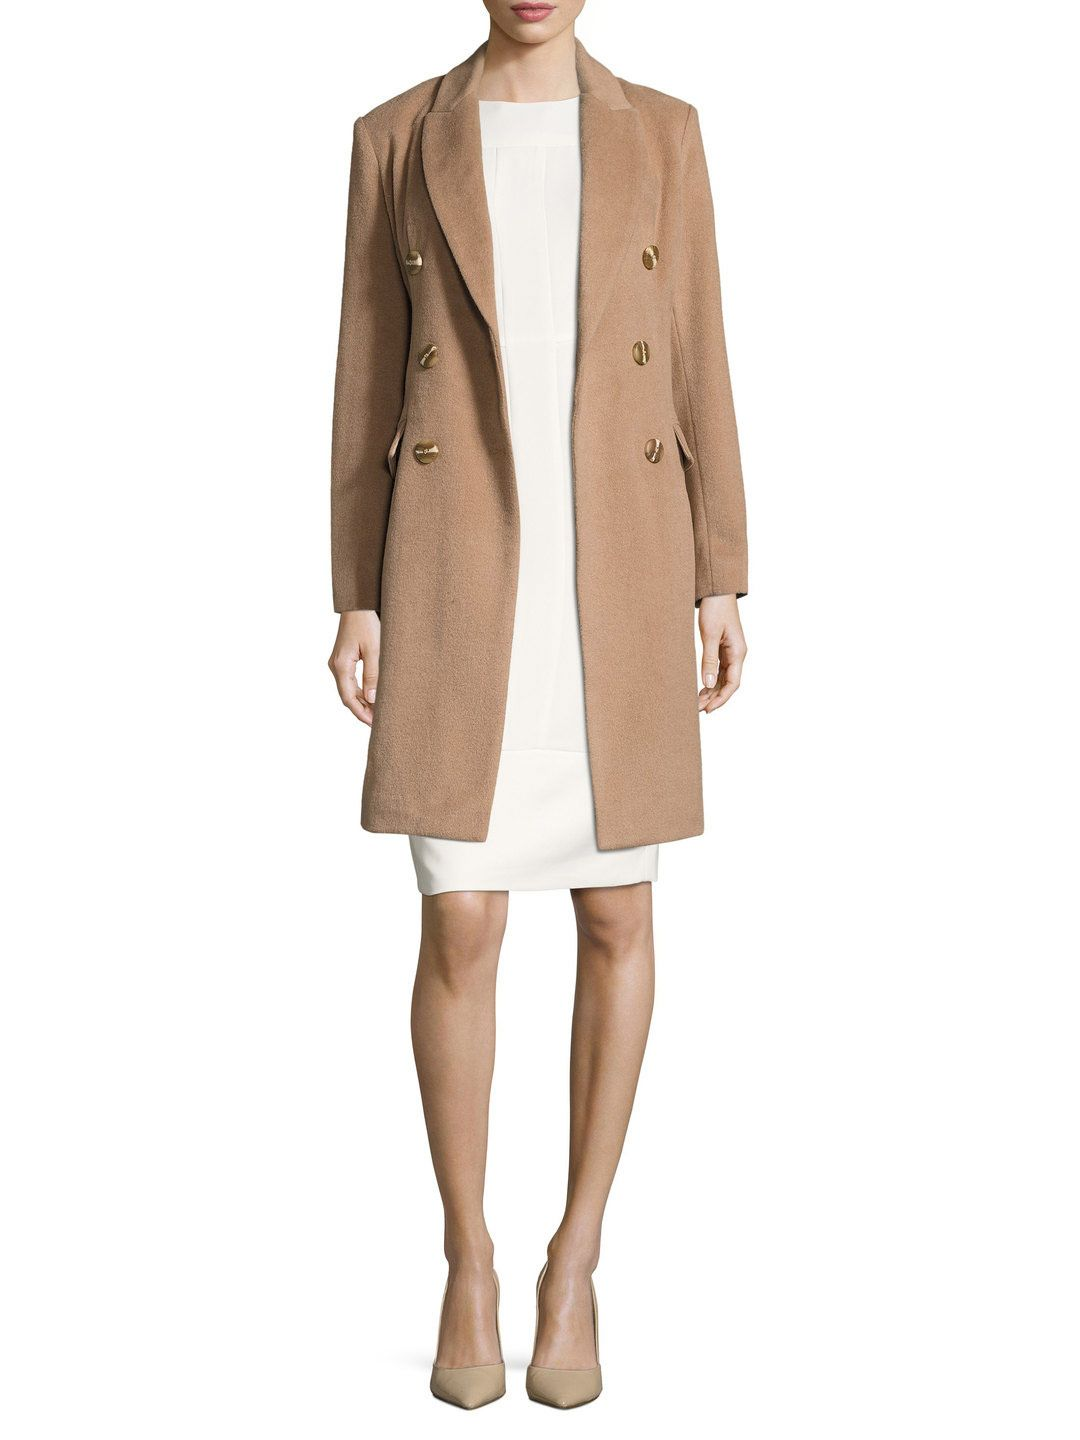 b61dcd1d6e1 The 17 Best Camel Coats to Buy Right Now